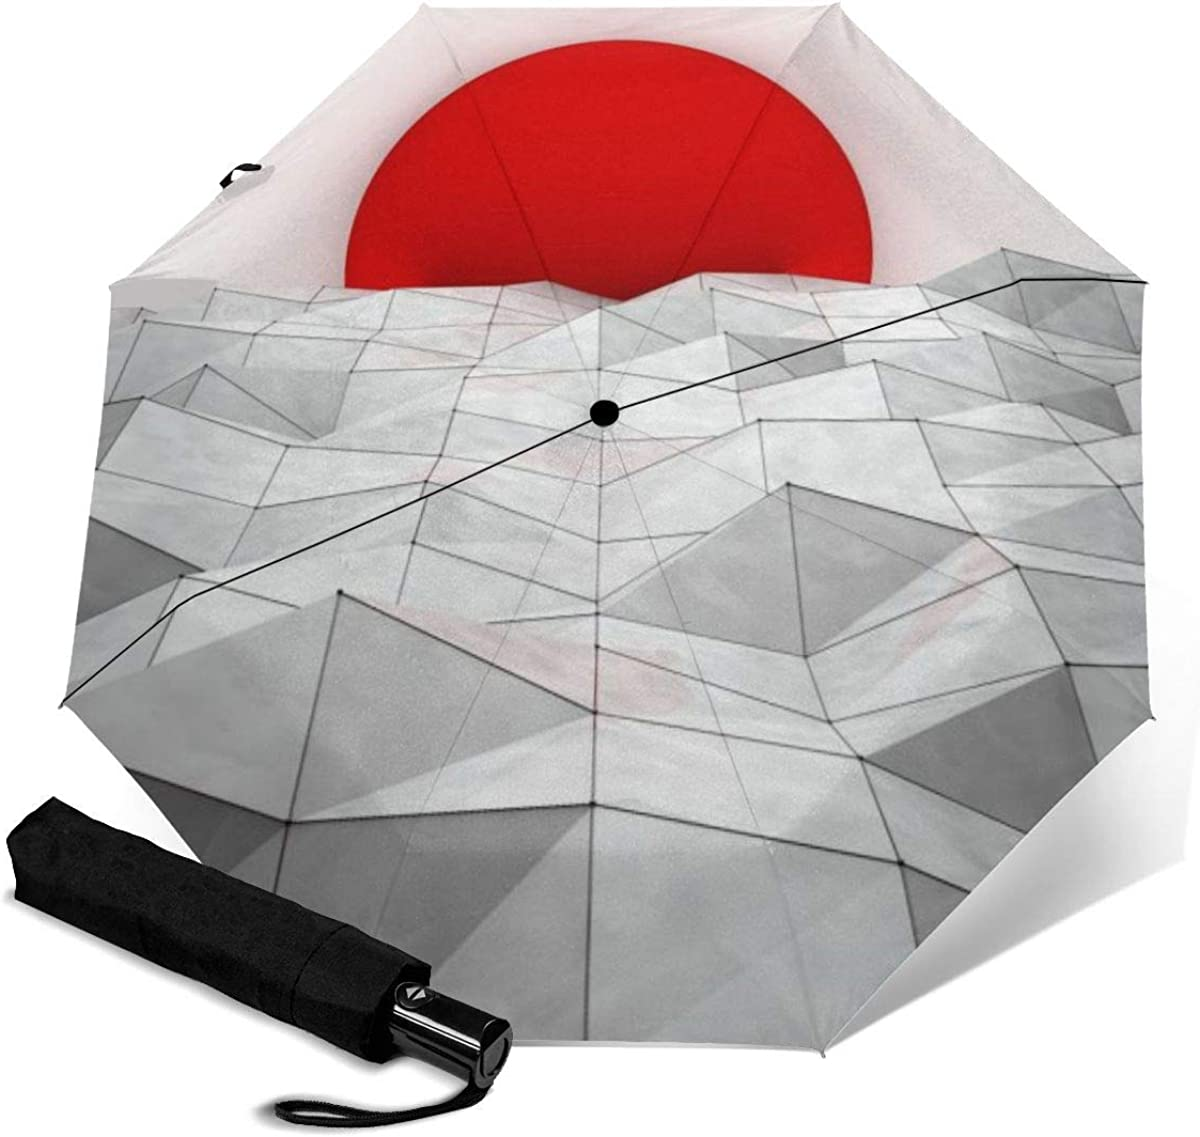 Red Sunset Geometry Compact Travel Umbrella Windproof Reinforced Canopy 8 Ribs Umbrella Auto Open And Close Button Personalized